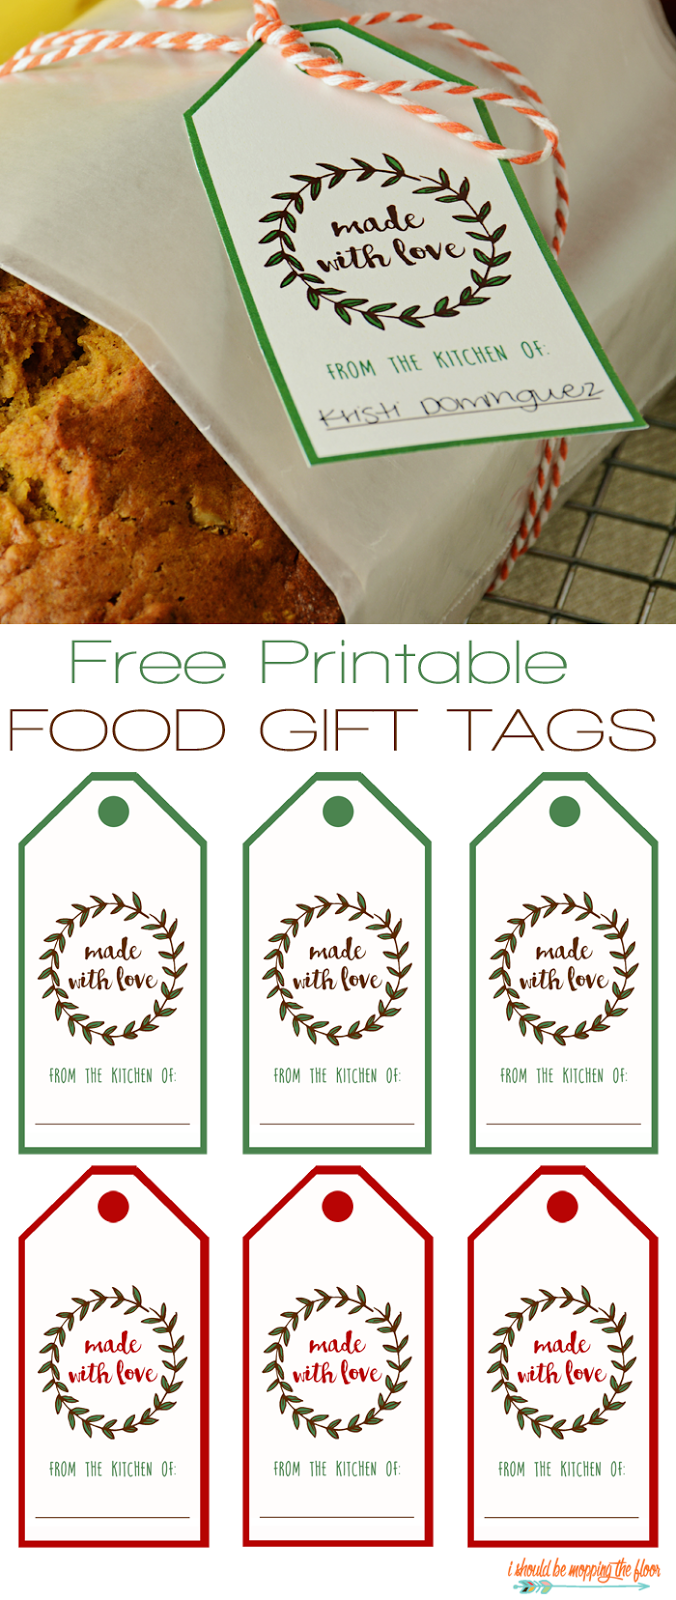 free printable food gift tags awesome things gift tags rh pinterest com